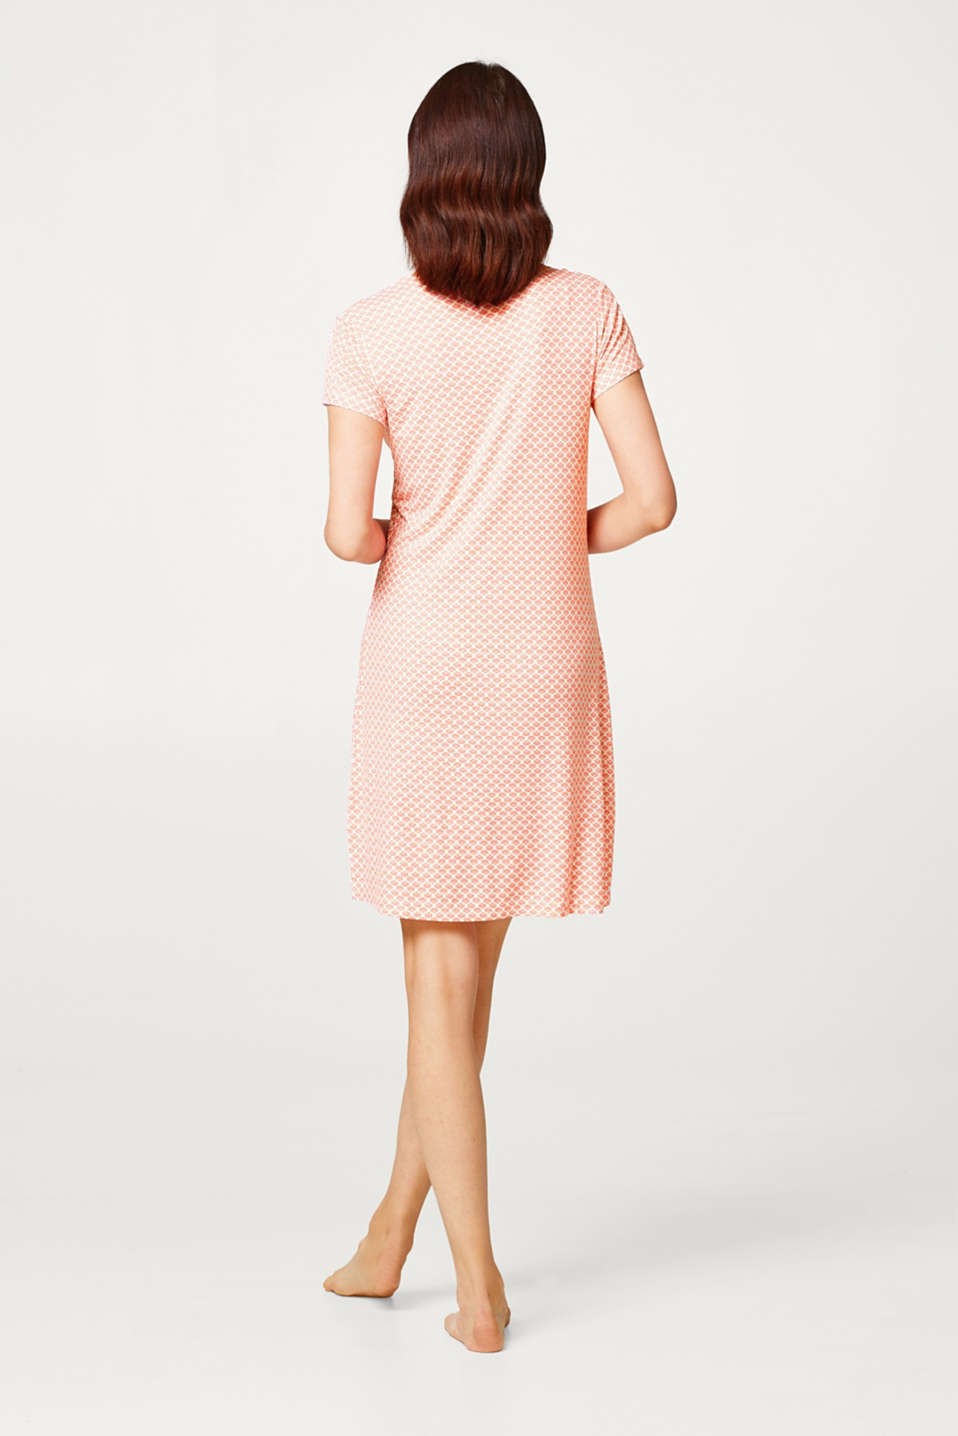 Snug jersey nightshirt with a delicate print